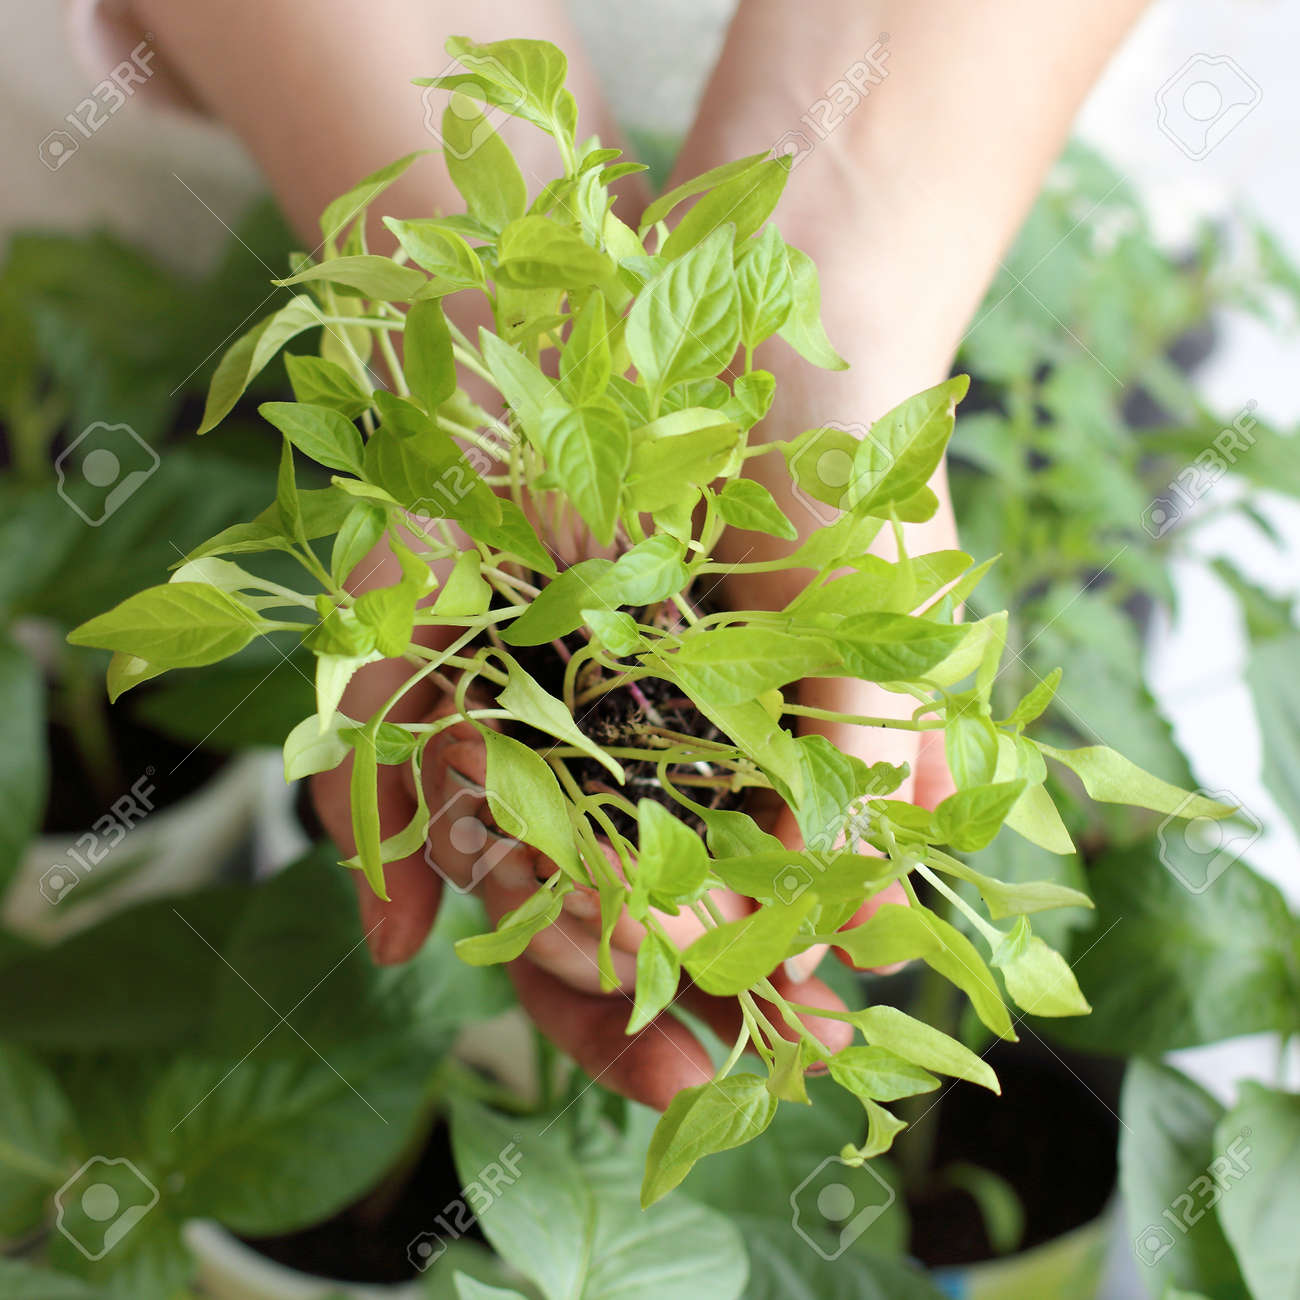 green pepper sprouts in the hands of a top view. new crop seedlings - 172472061